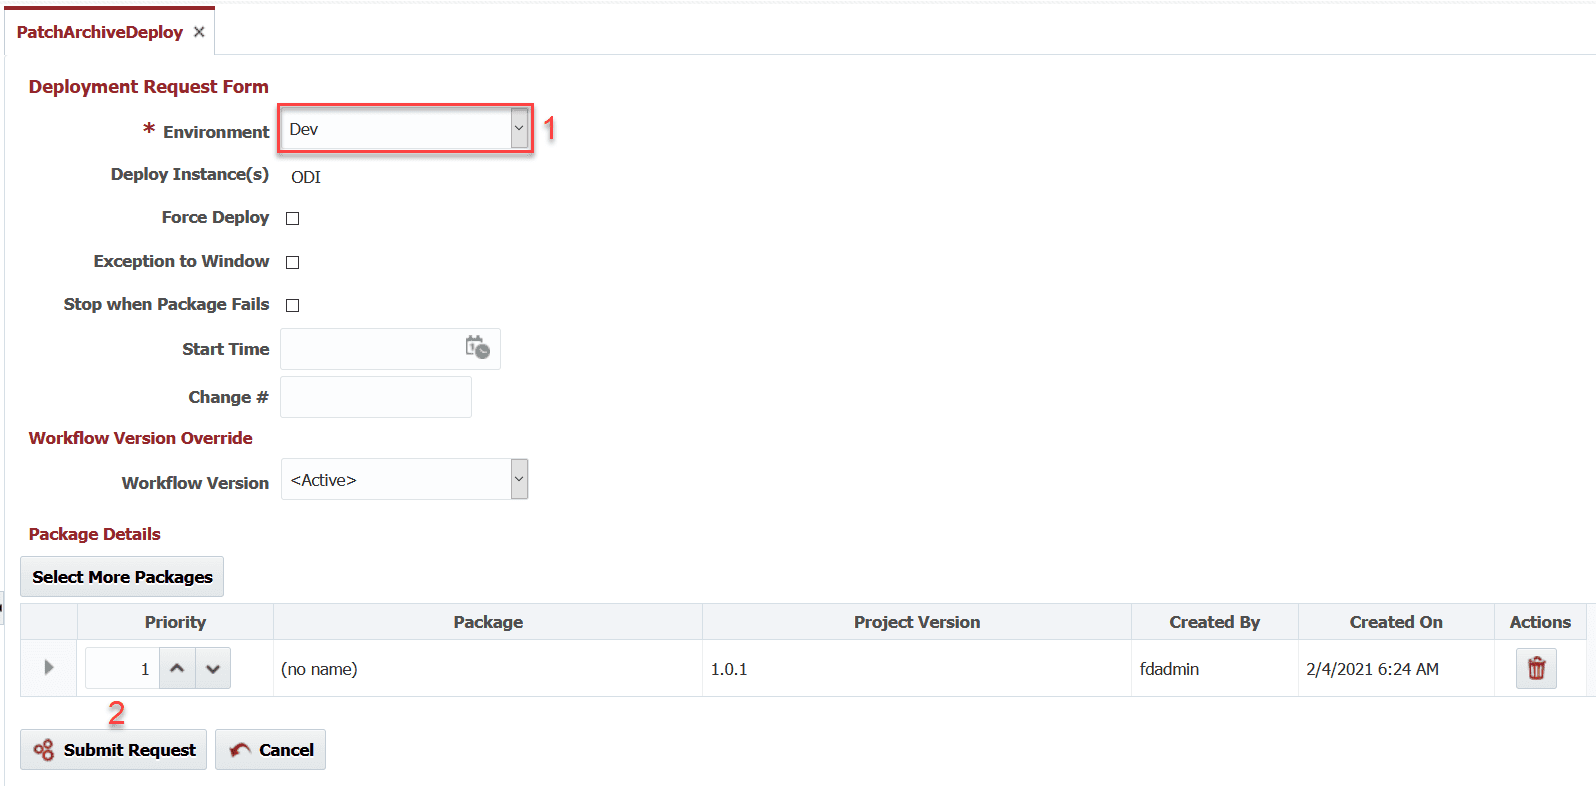 Deployment Request Form in FlexDeploy